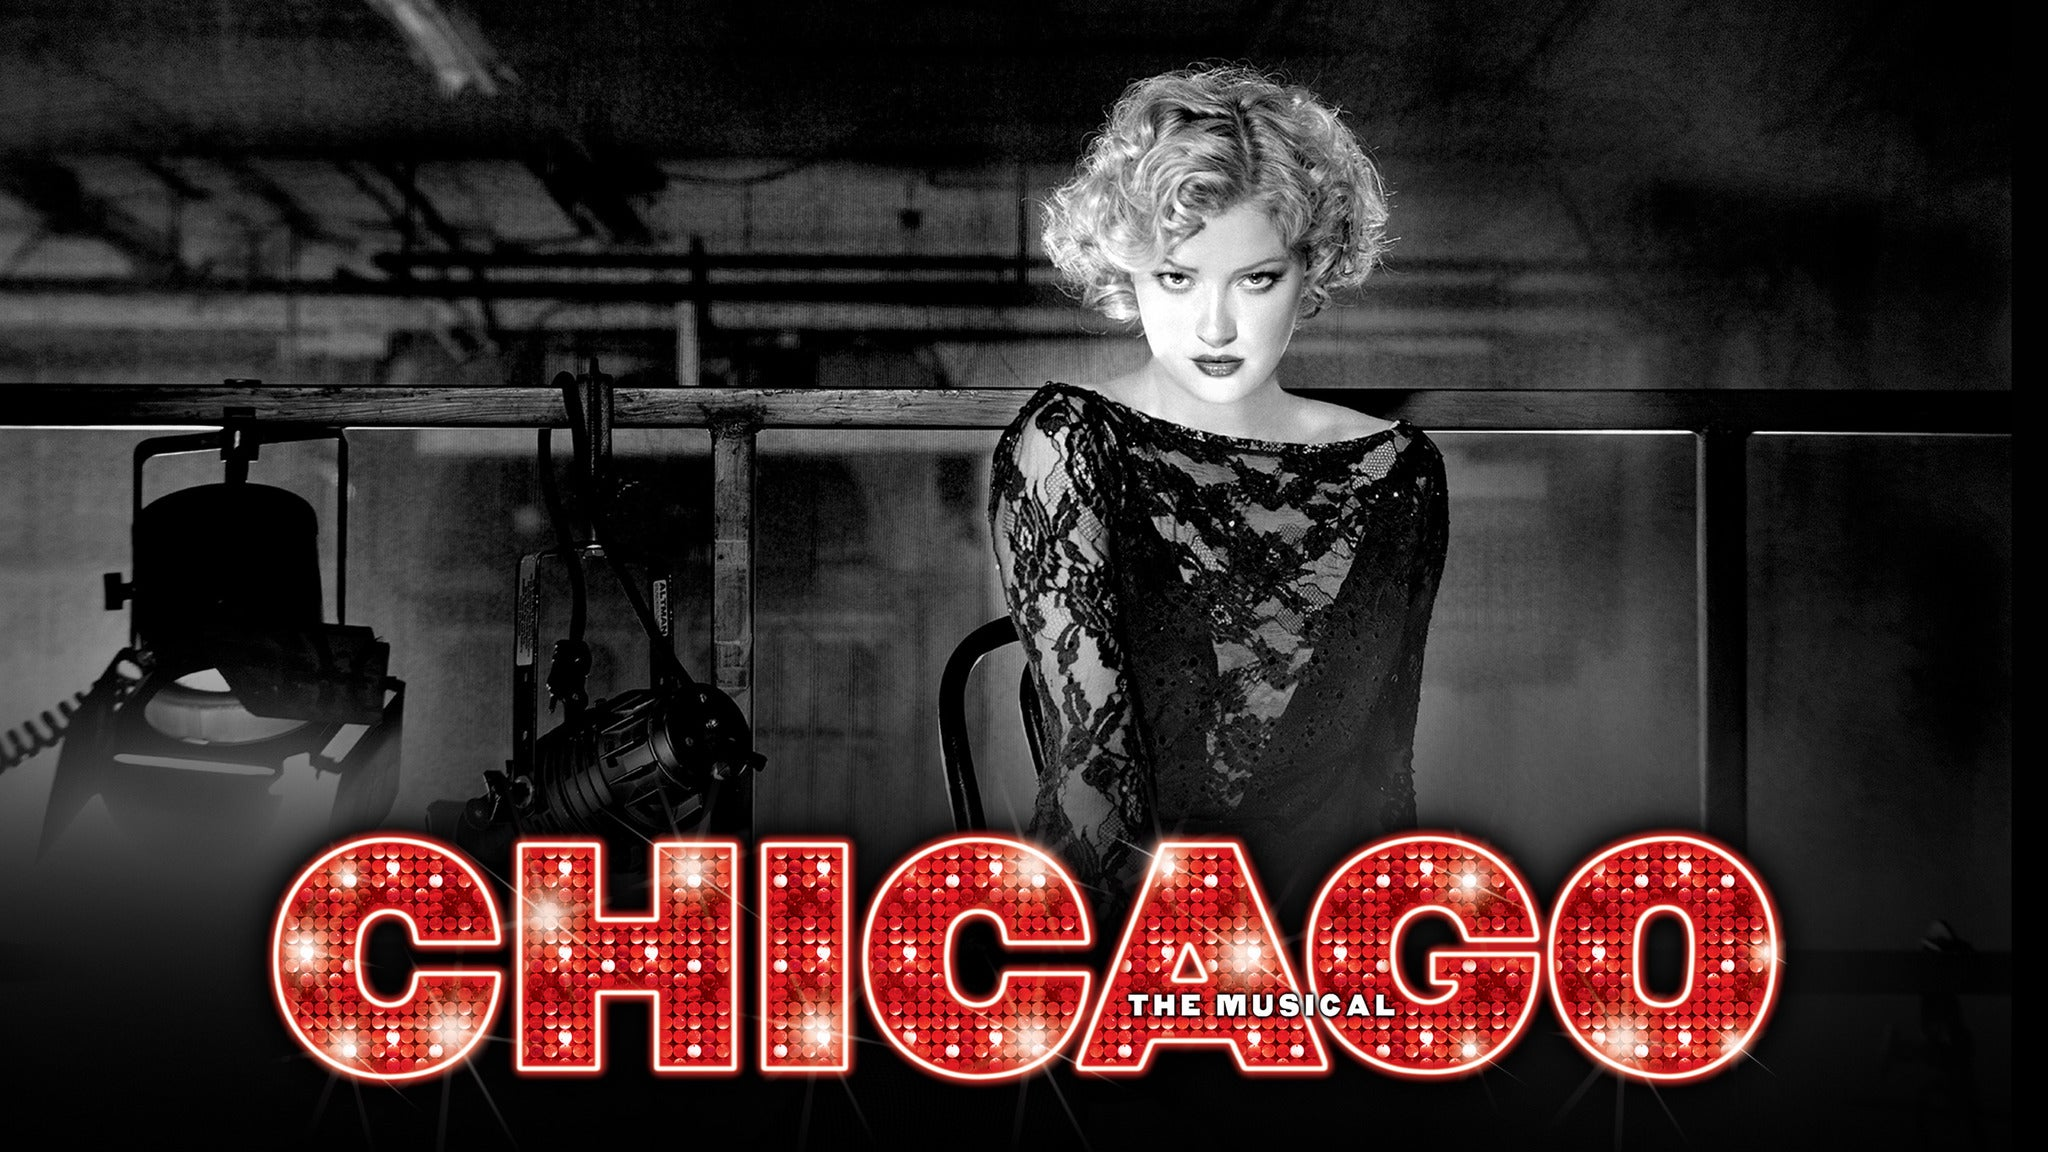 Chicago - The Musical at Winspear Opera House